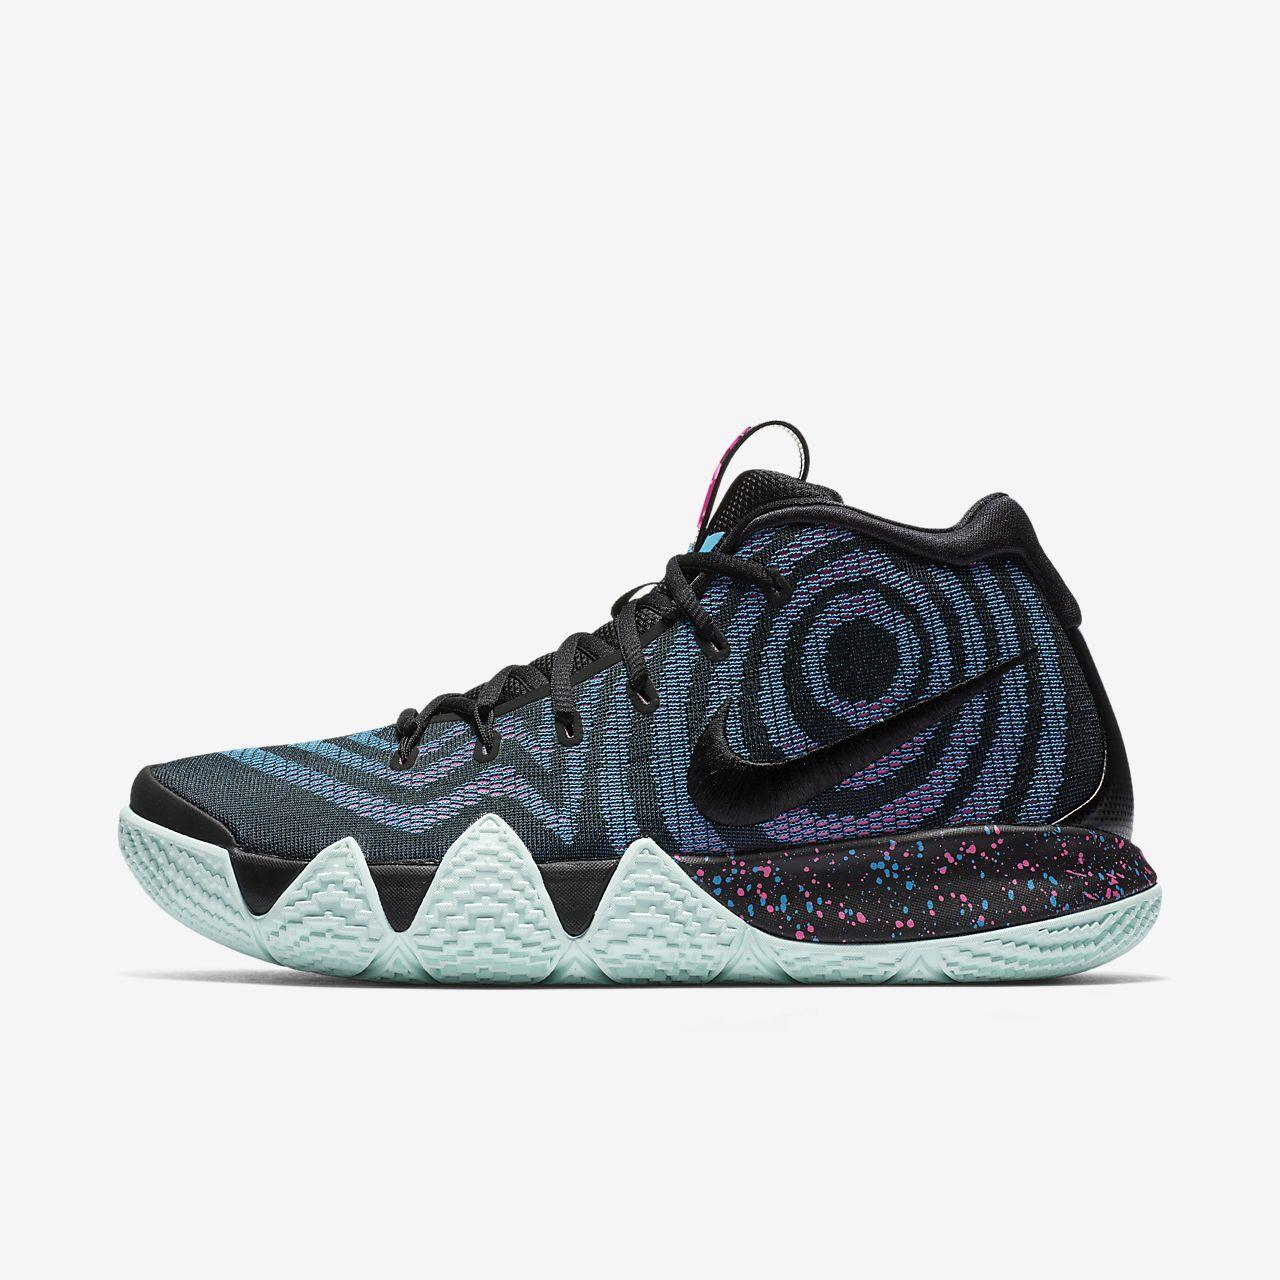 check out 8a192 1d7f6 ... uk kyrie 4 80s basketball shoe 5a55d 4ced8